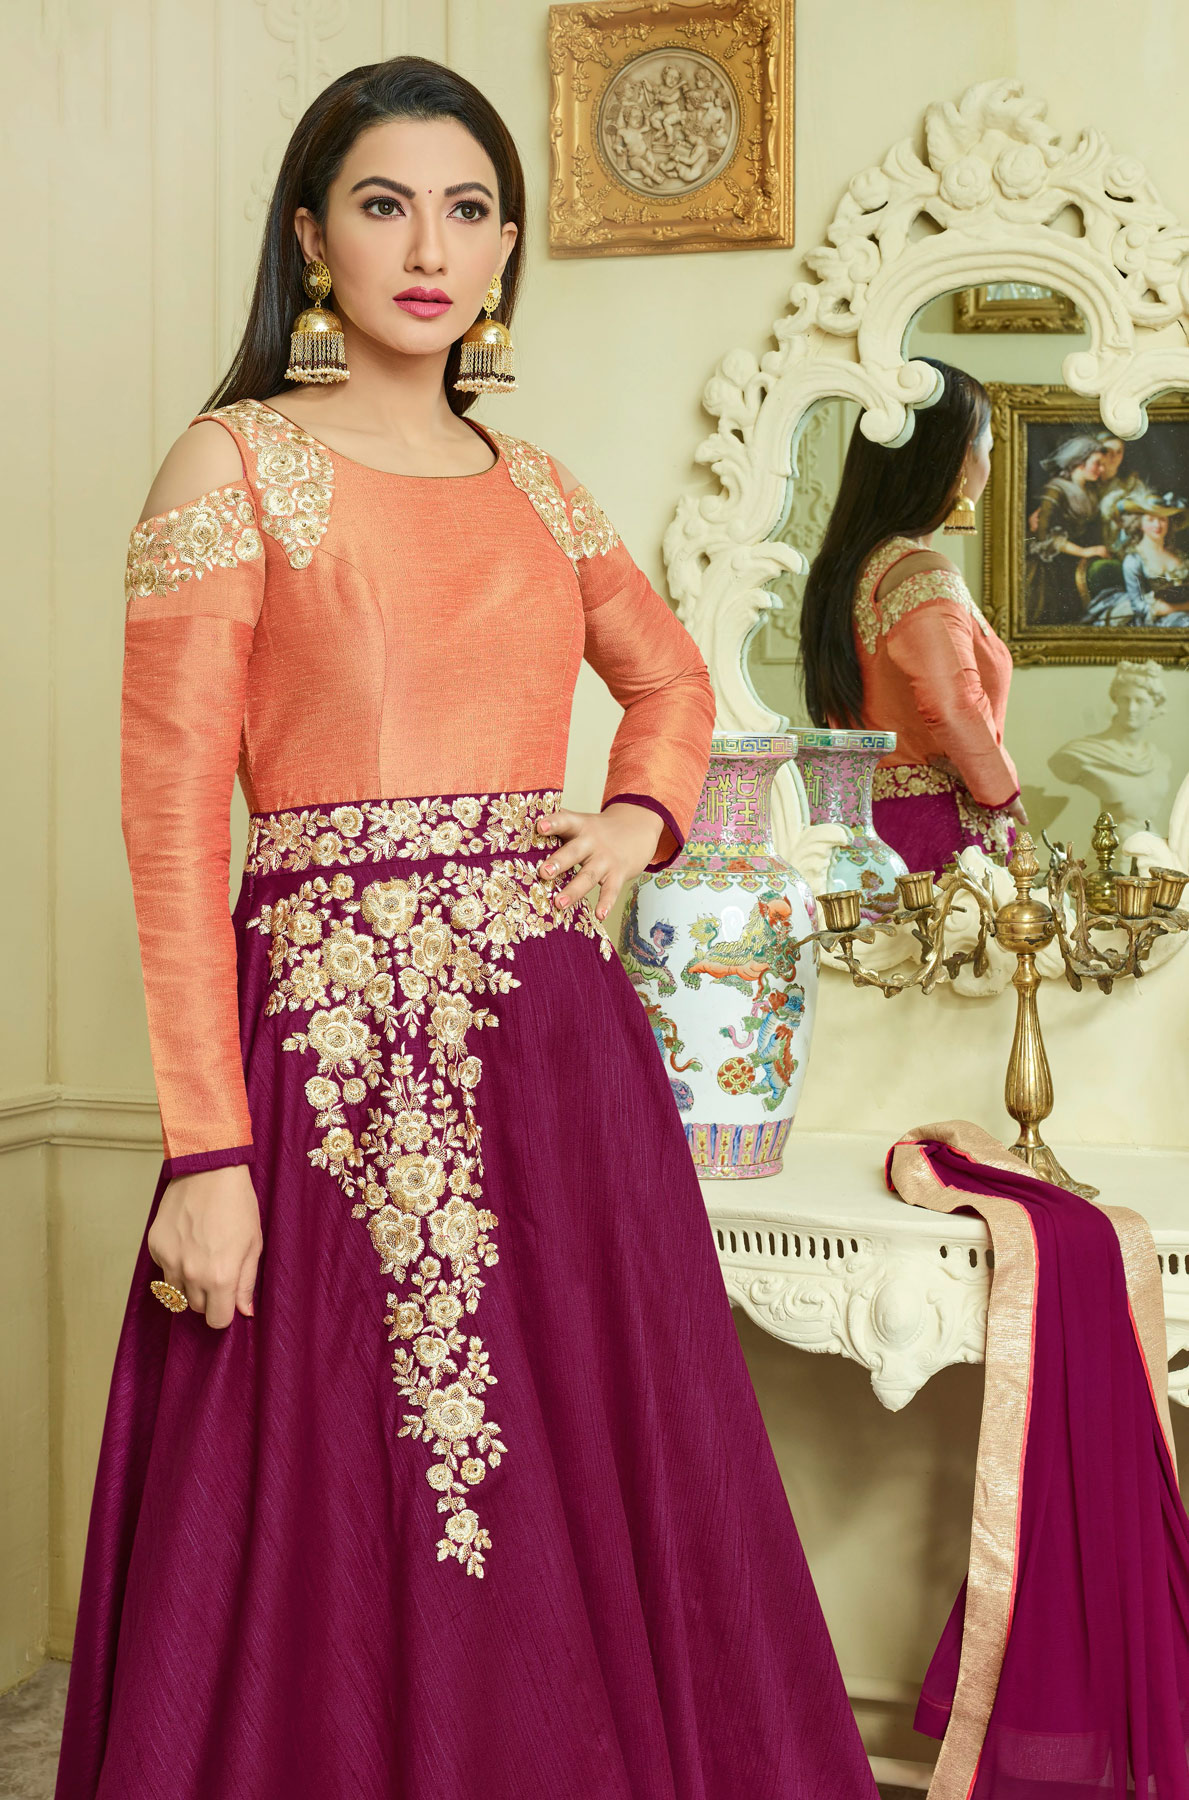 Mesmerising Orange-Maroon Colored Designer Embroidered Banglori Silk Anarkali Gown